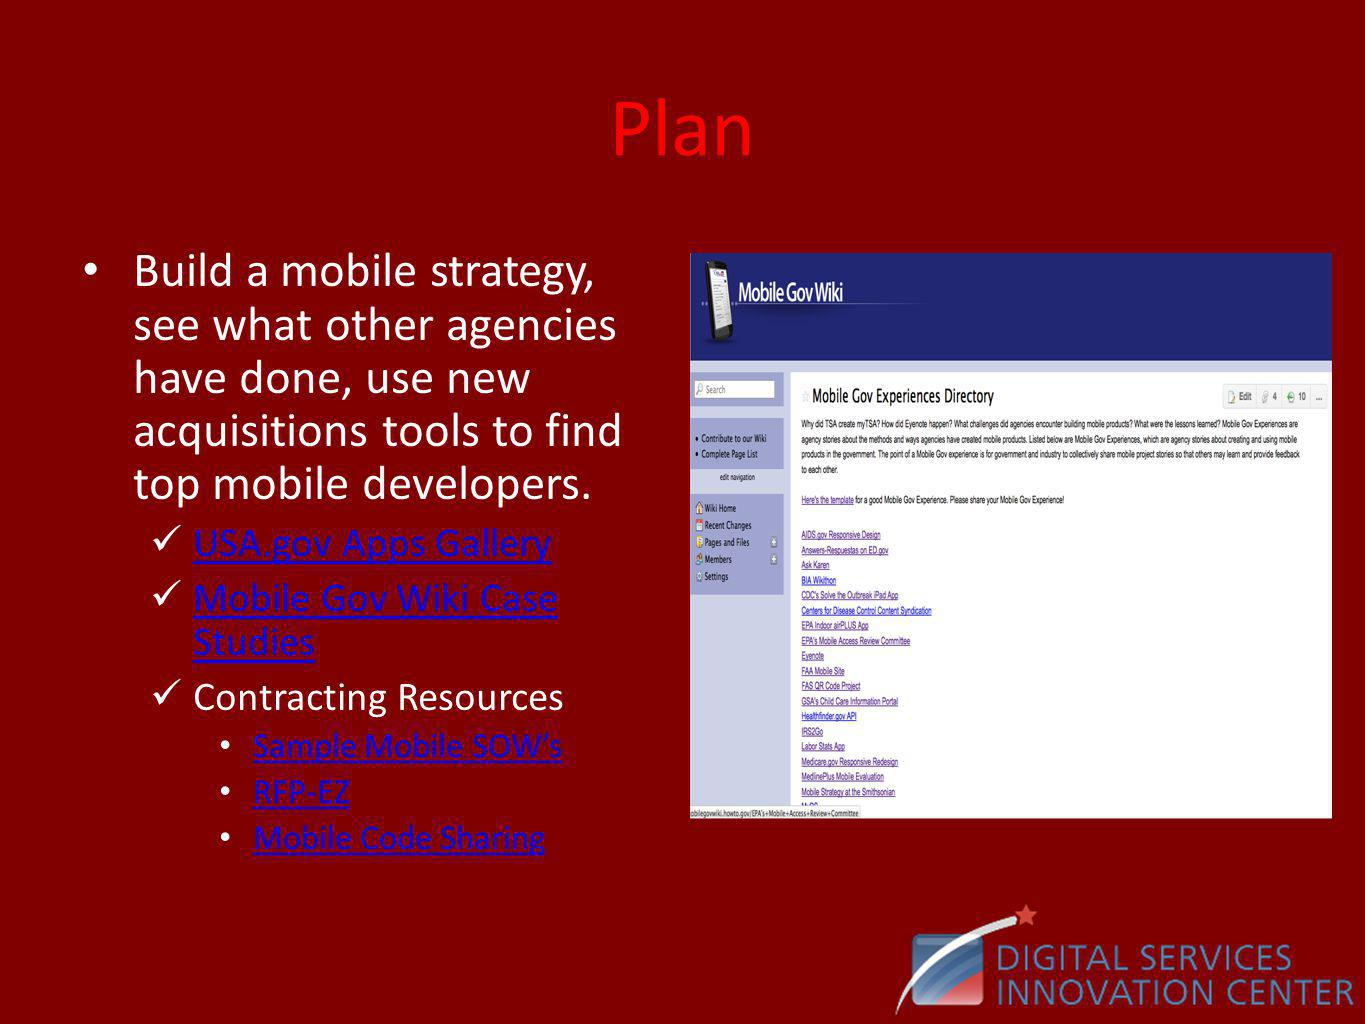 Plan Build a mobile strategy, see what other agencies have done, use new acquisitions tools to find top mobile developers.